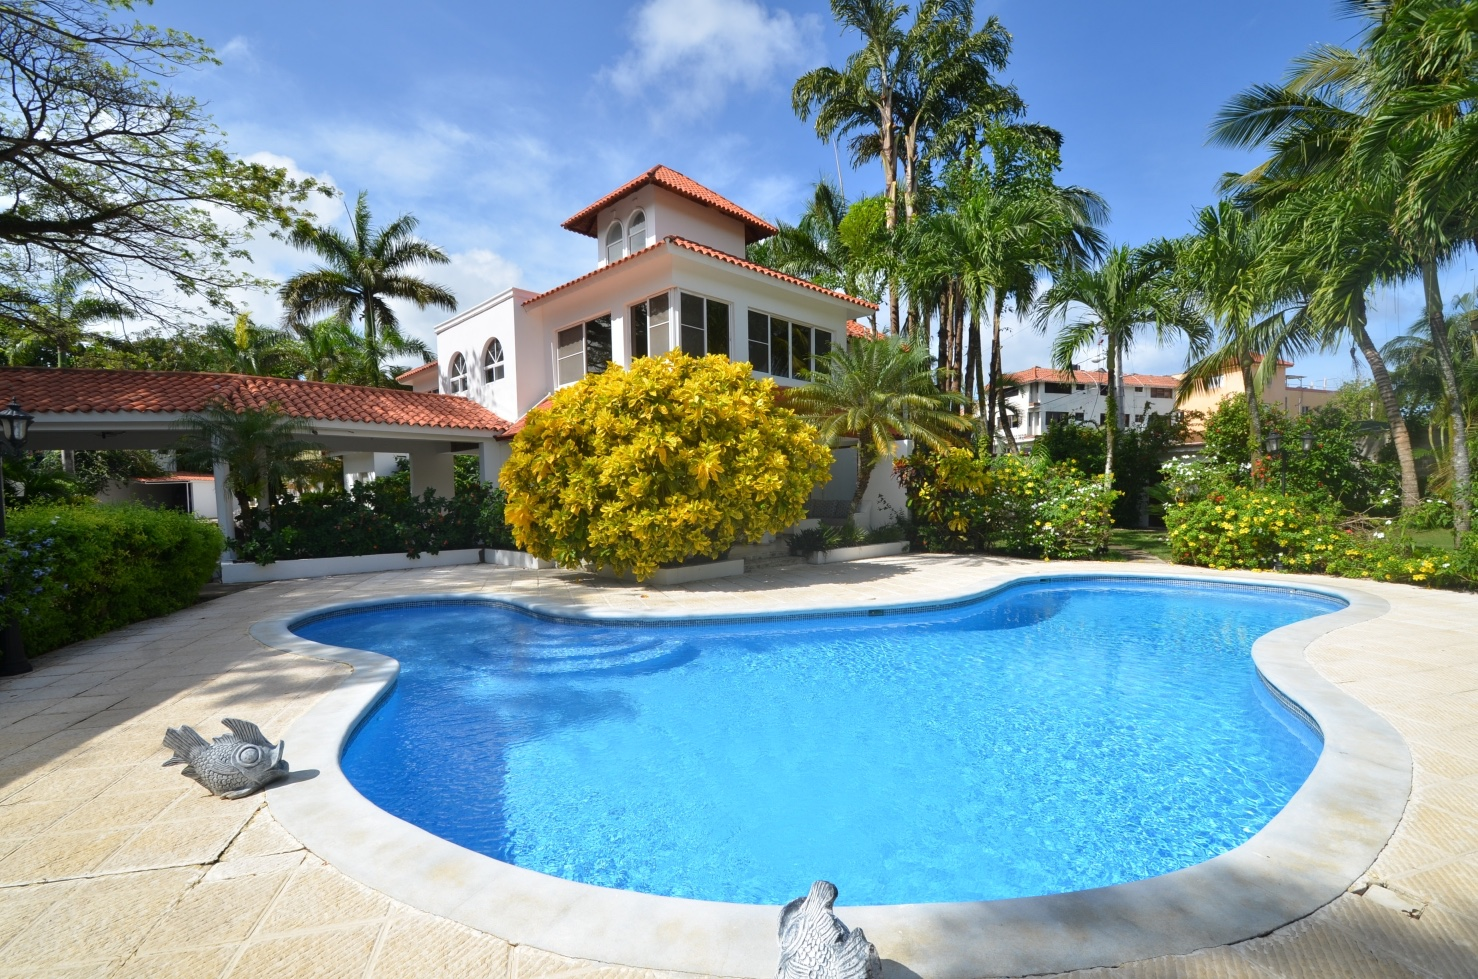 9 Bedroom Villa Rental Jacuzzi Private Pool Sosua